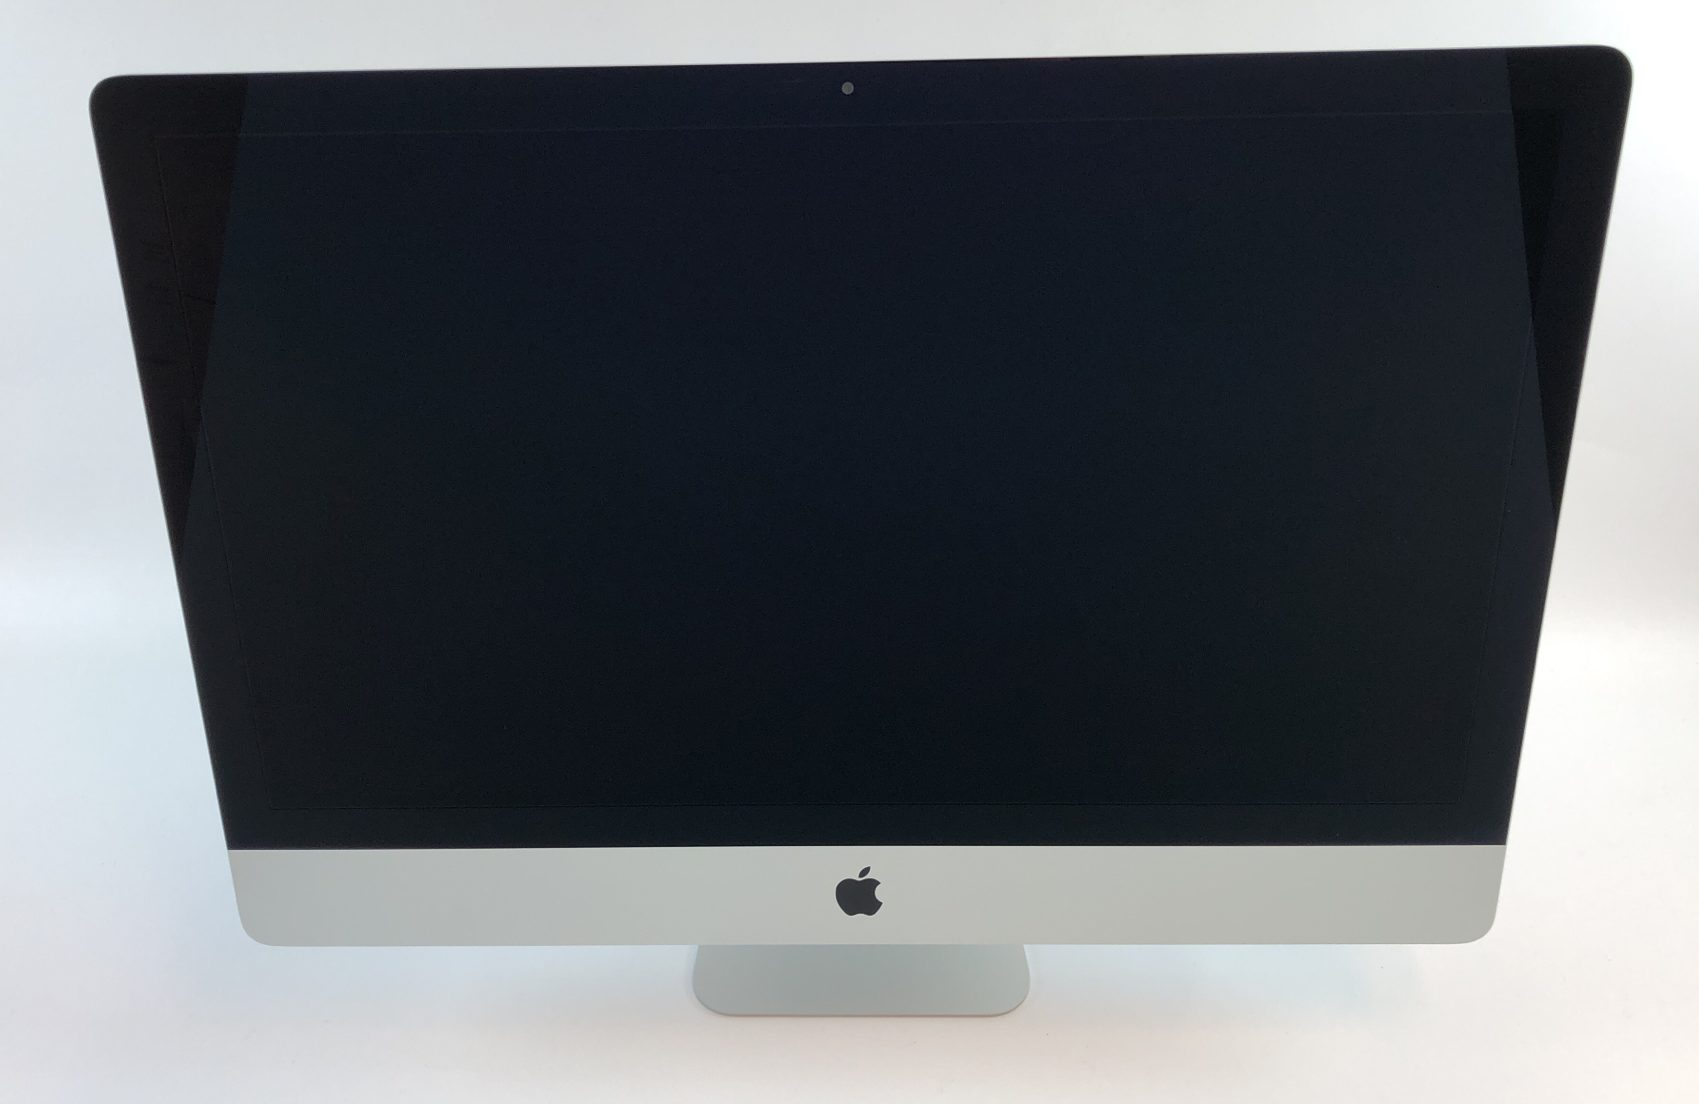 "iMac 27"" Retina 5K Late 2015 (Intel Quad-Core i5 3.2 GHz 32 GB RAM 256 GB SSD), Intel Quad-Core i5 3.2 GHz, 32 GB RAM, 256 GB SSD, immagine 1"